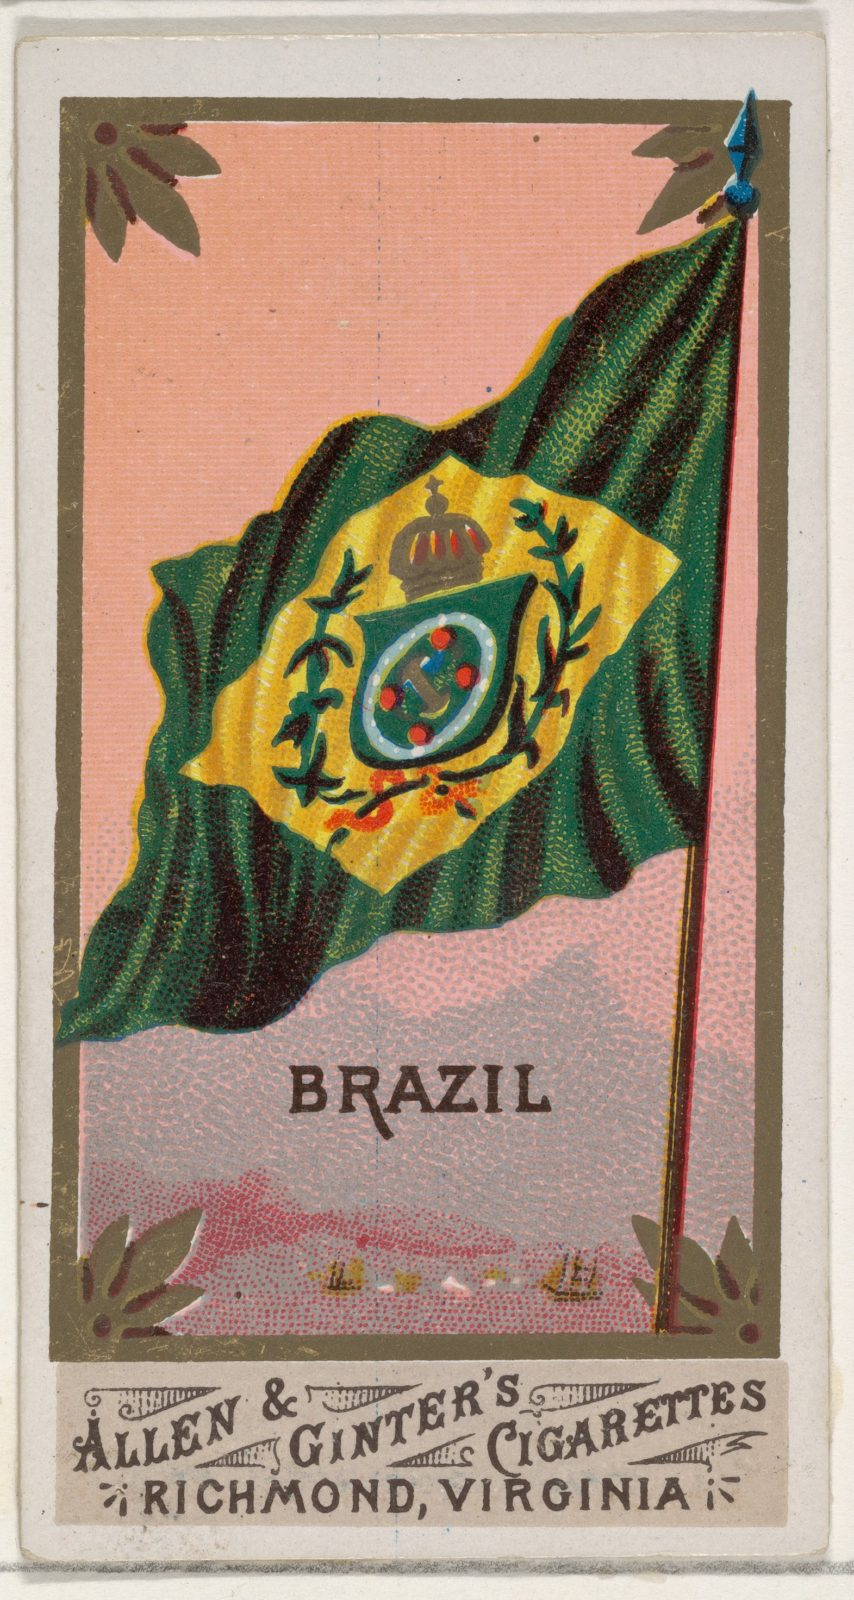 Brazil, from Flags of All Nations, Series 1 (N9) for Allen & Ginter Cigarettes Brands